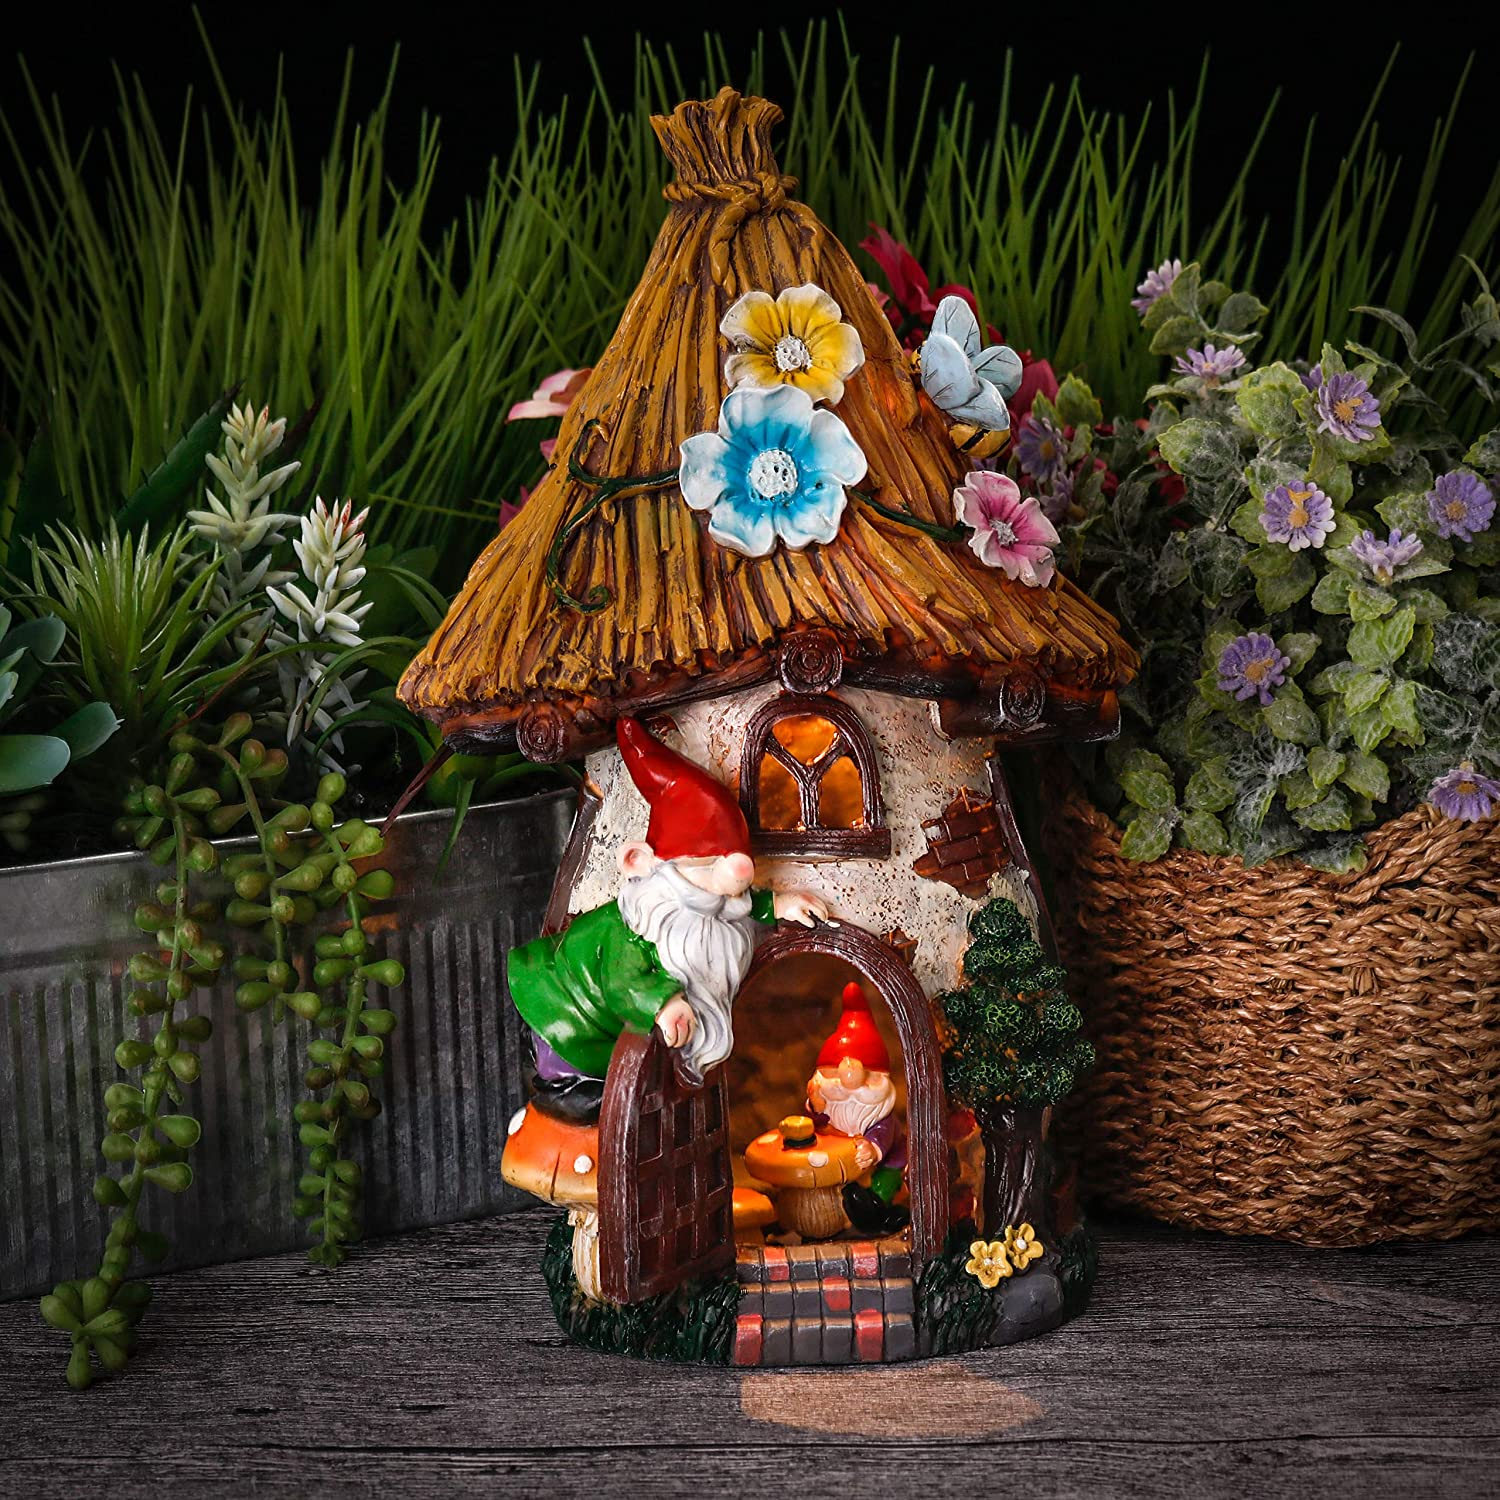 TERESA'S COLLECTIONS 12.2 Inch Fairy Garden House Statues with Gnomes, Solar Powered Garden Lights Garden Figurines for Outdoor Patio Yard Decorations (Resin)